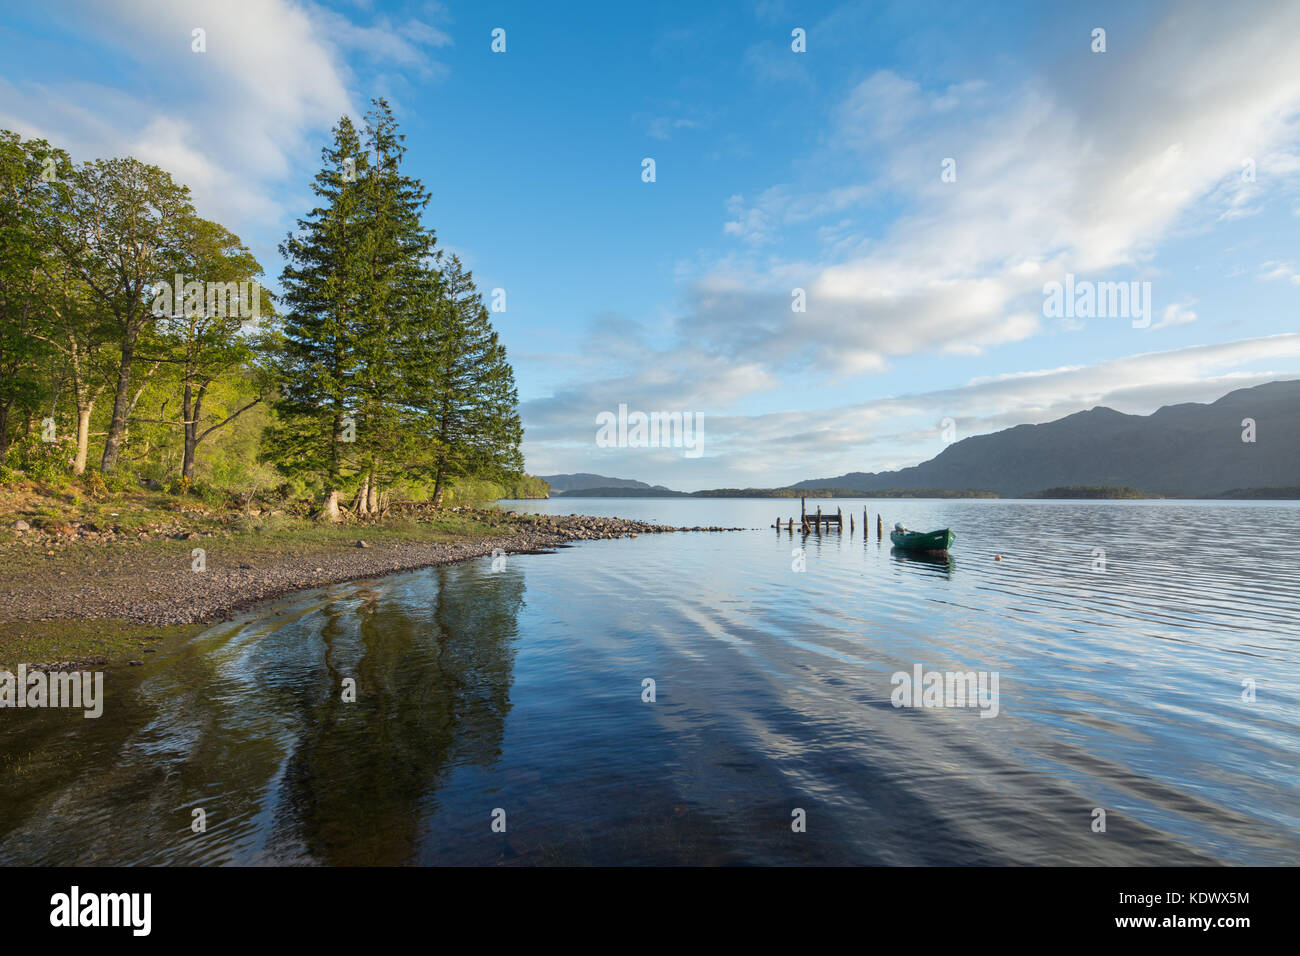 Boat on Loch Maree, Wester Ross, Scotland - Stock Image